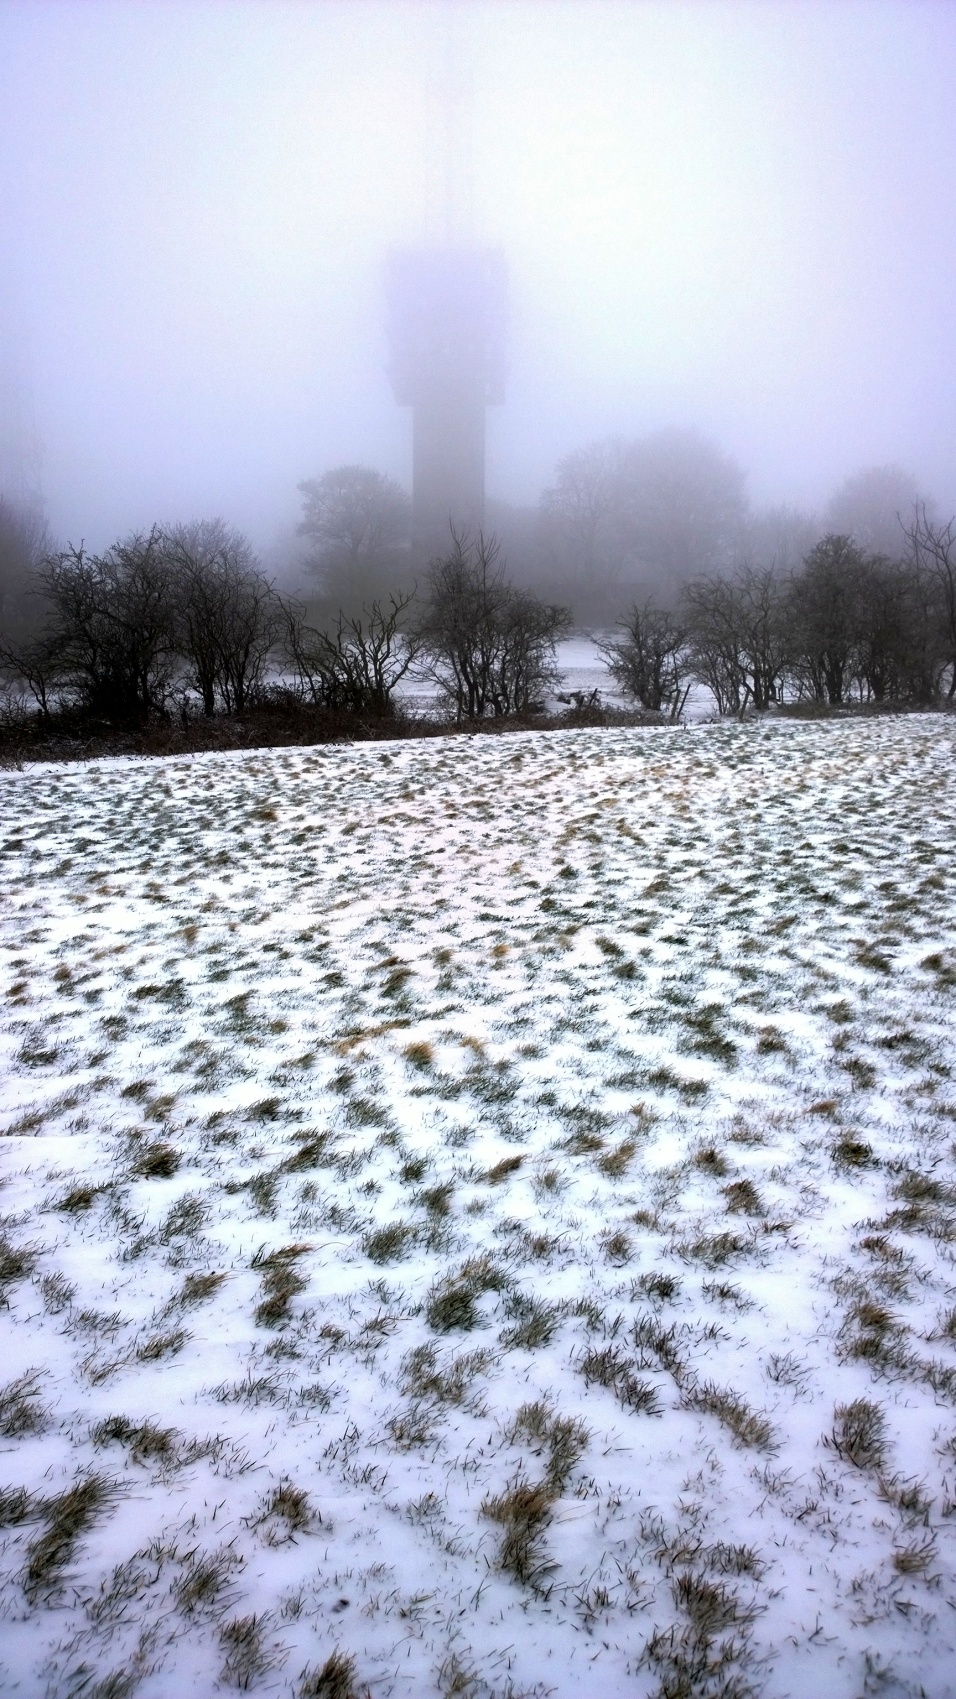 Snow-covered Rowley Hills (image © Mike Poulton)